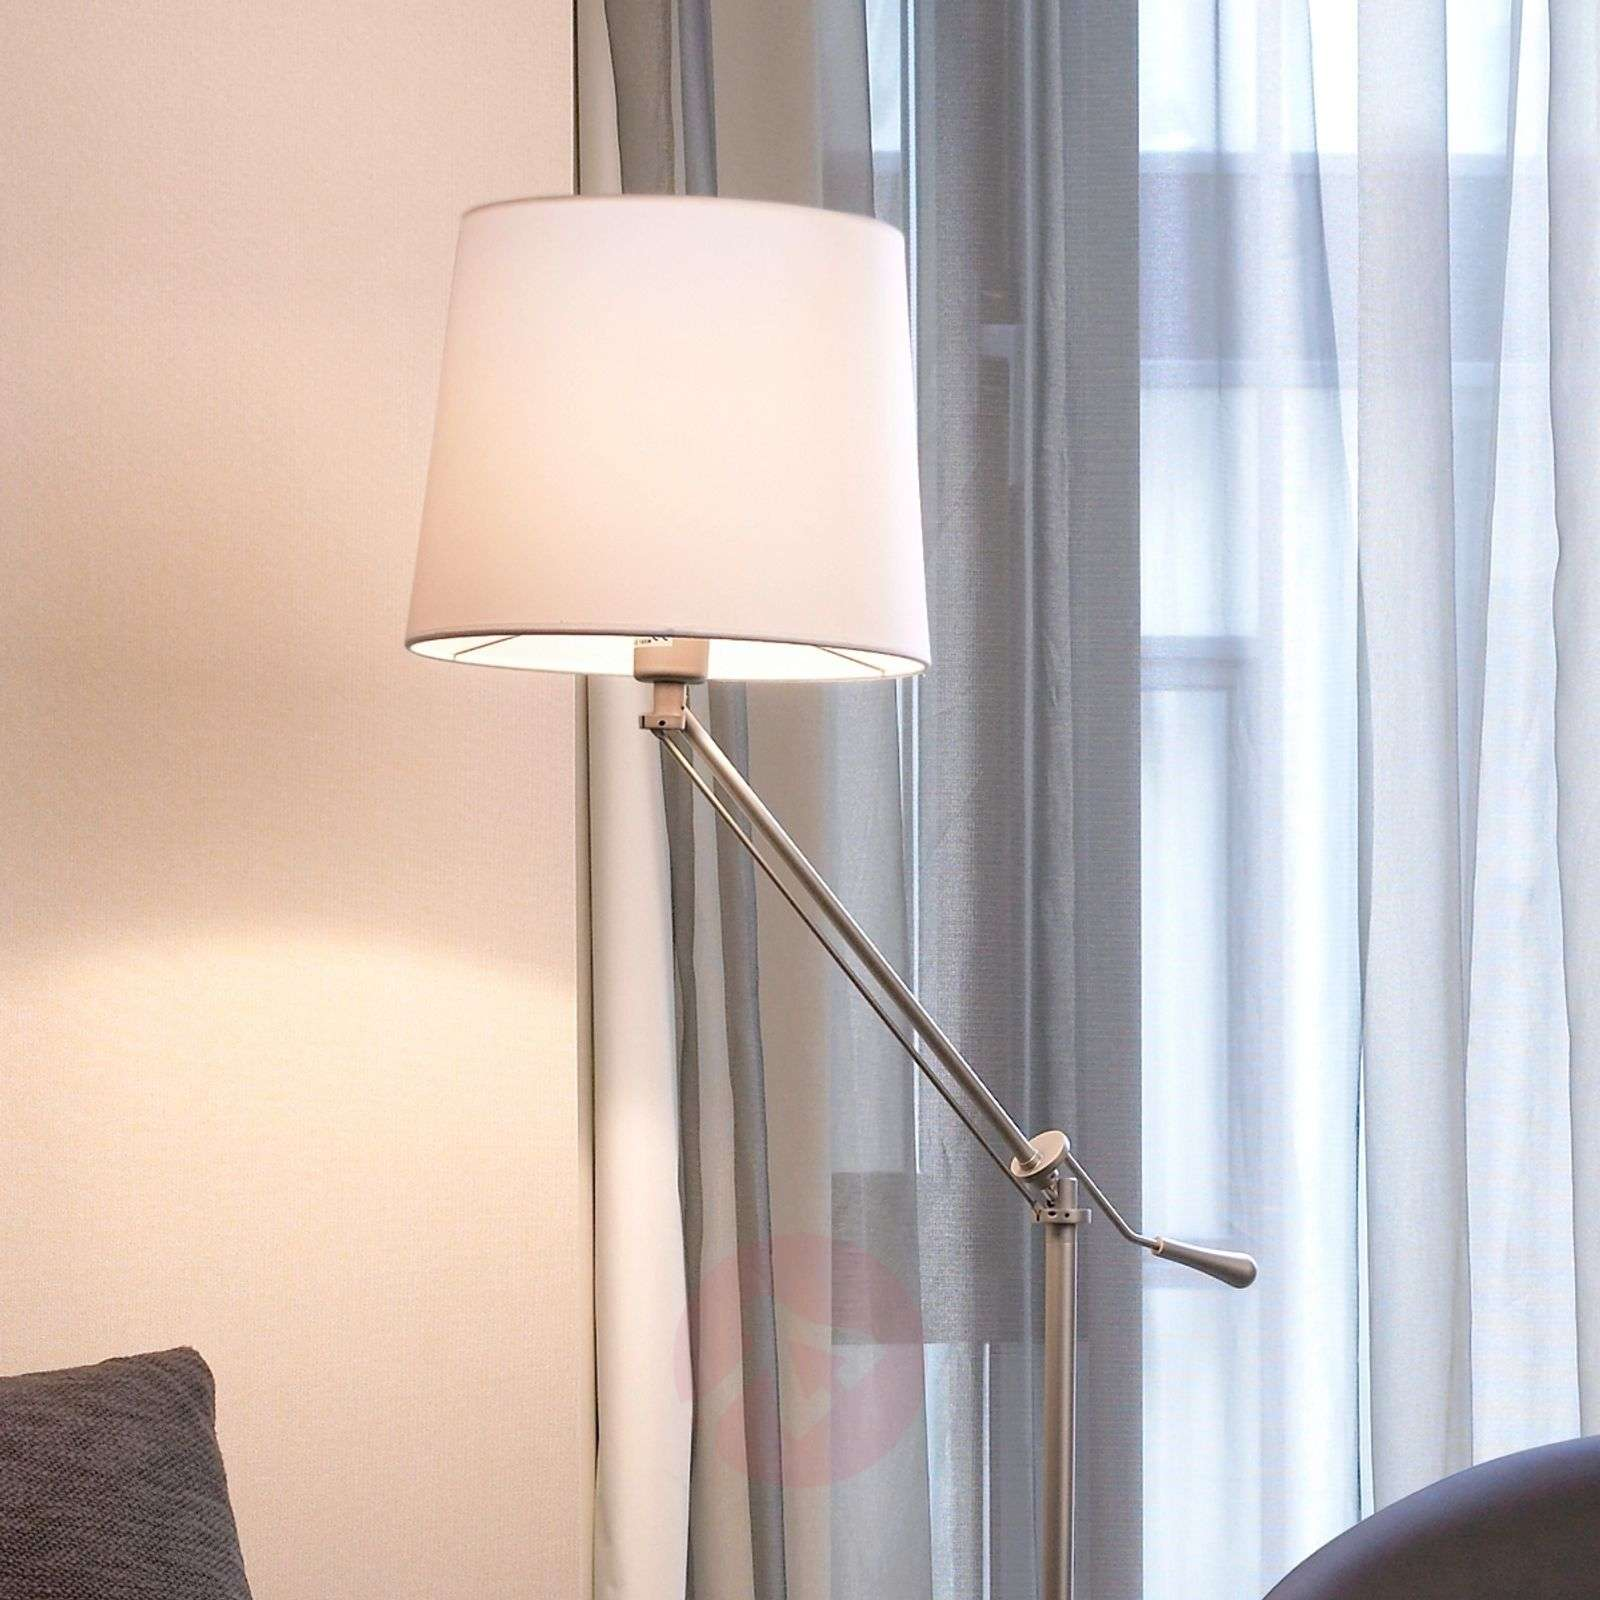 Moving floor lamp Milan with cotton lampshade-6026328-02